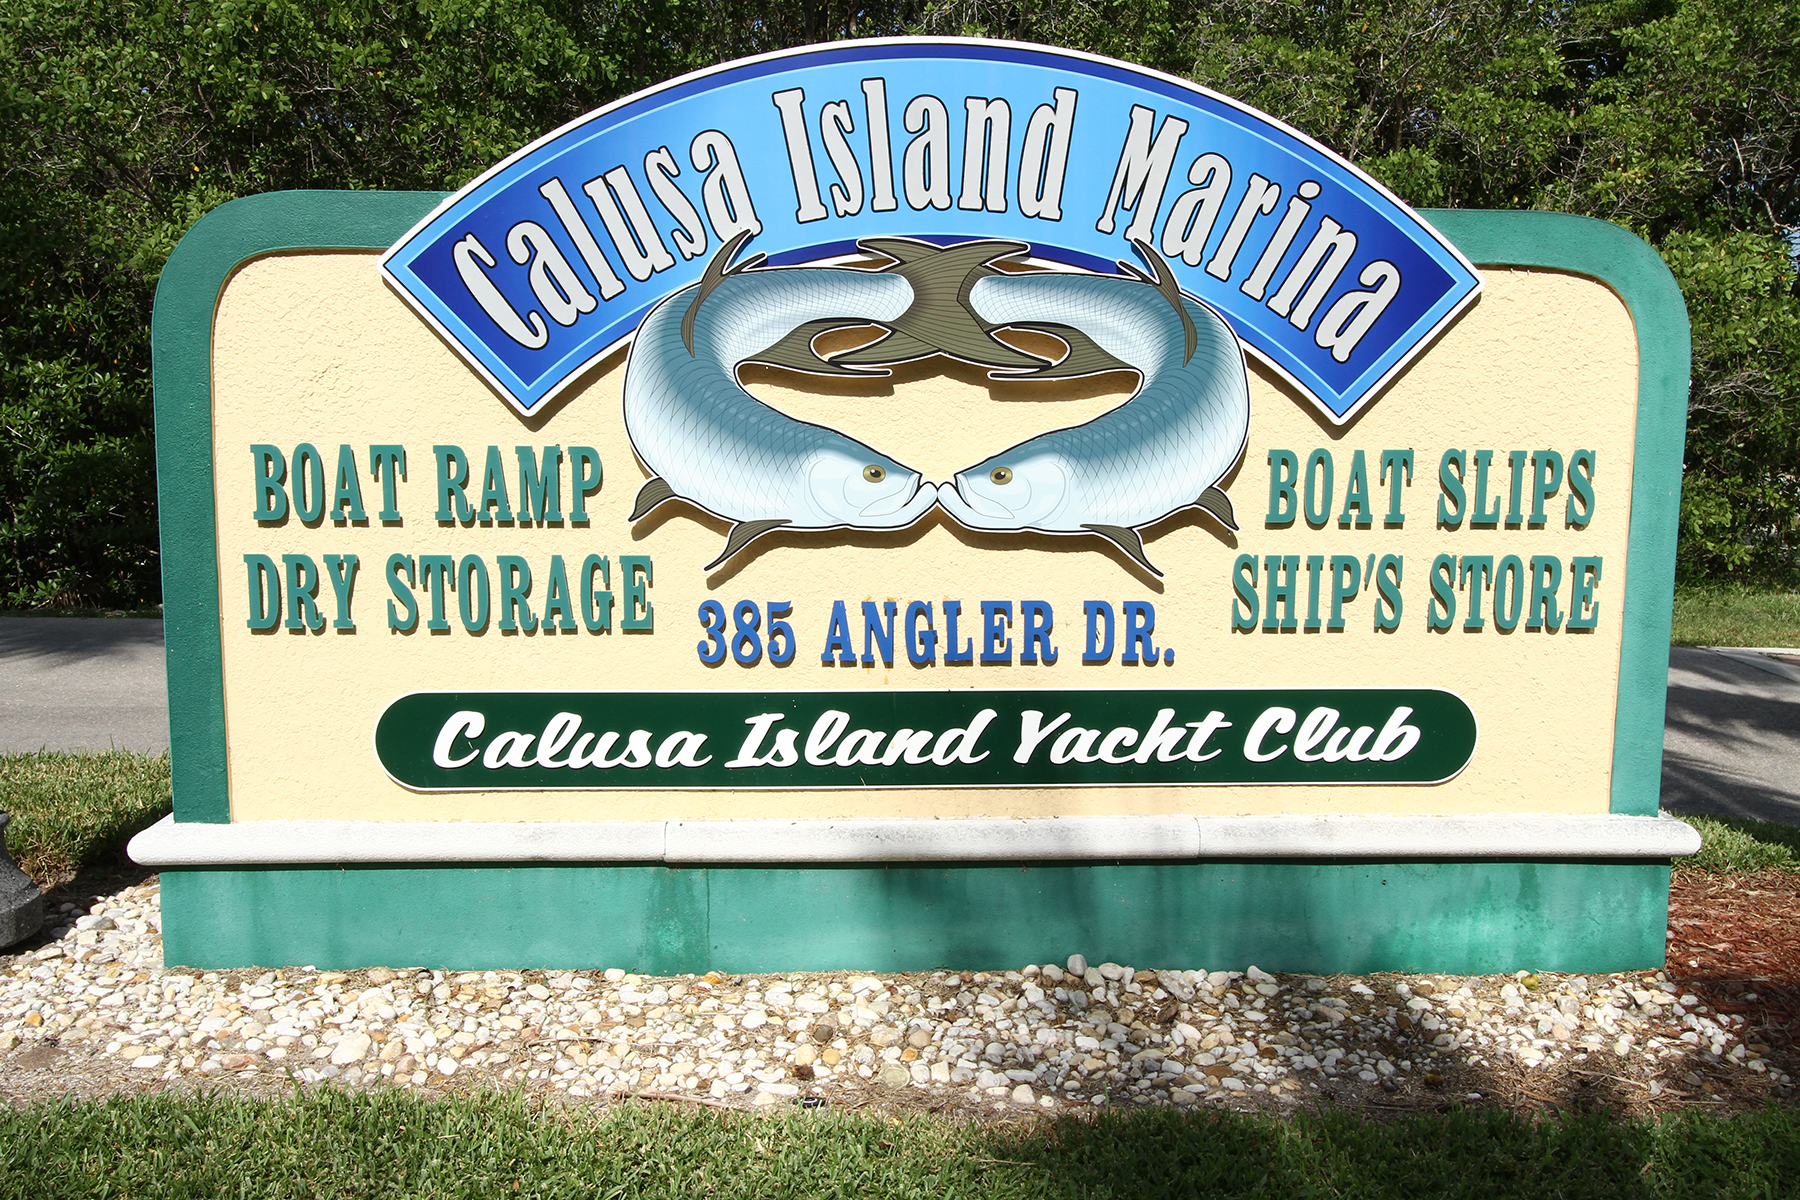 Property Of GOODLAND-CALUSA ISLAND VILLAGE